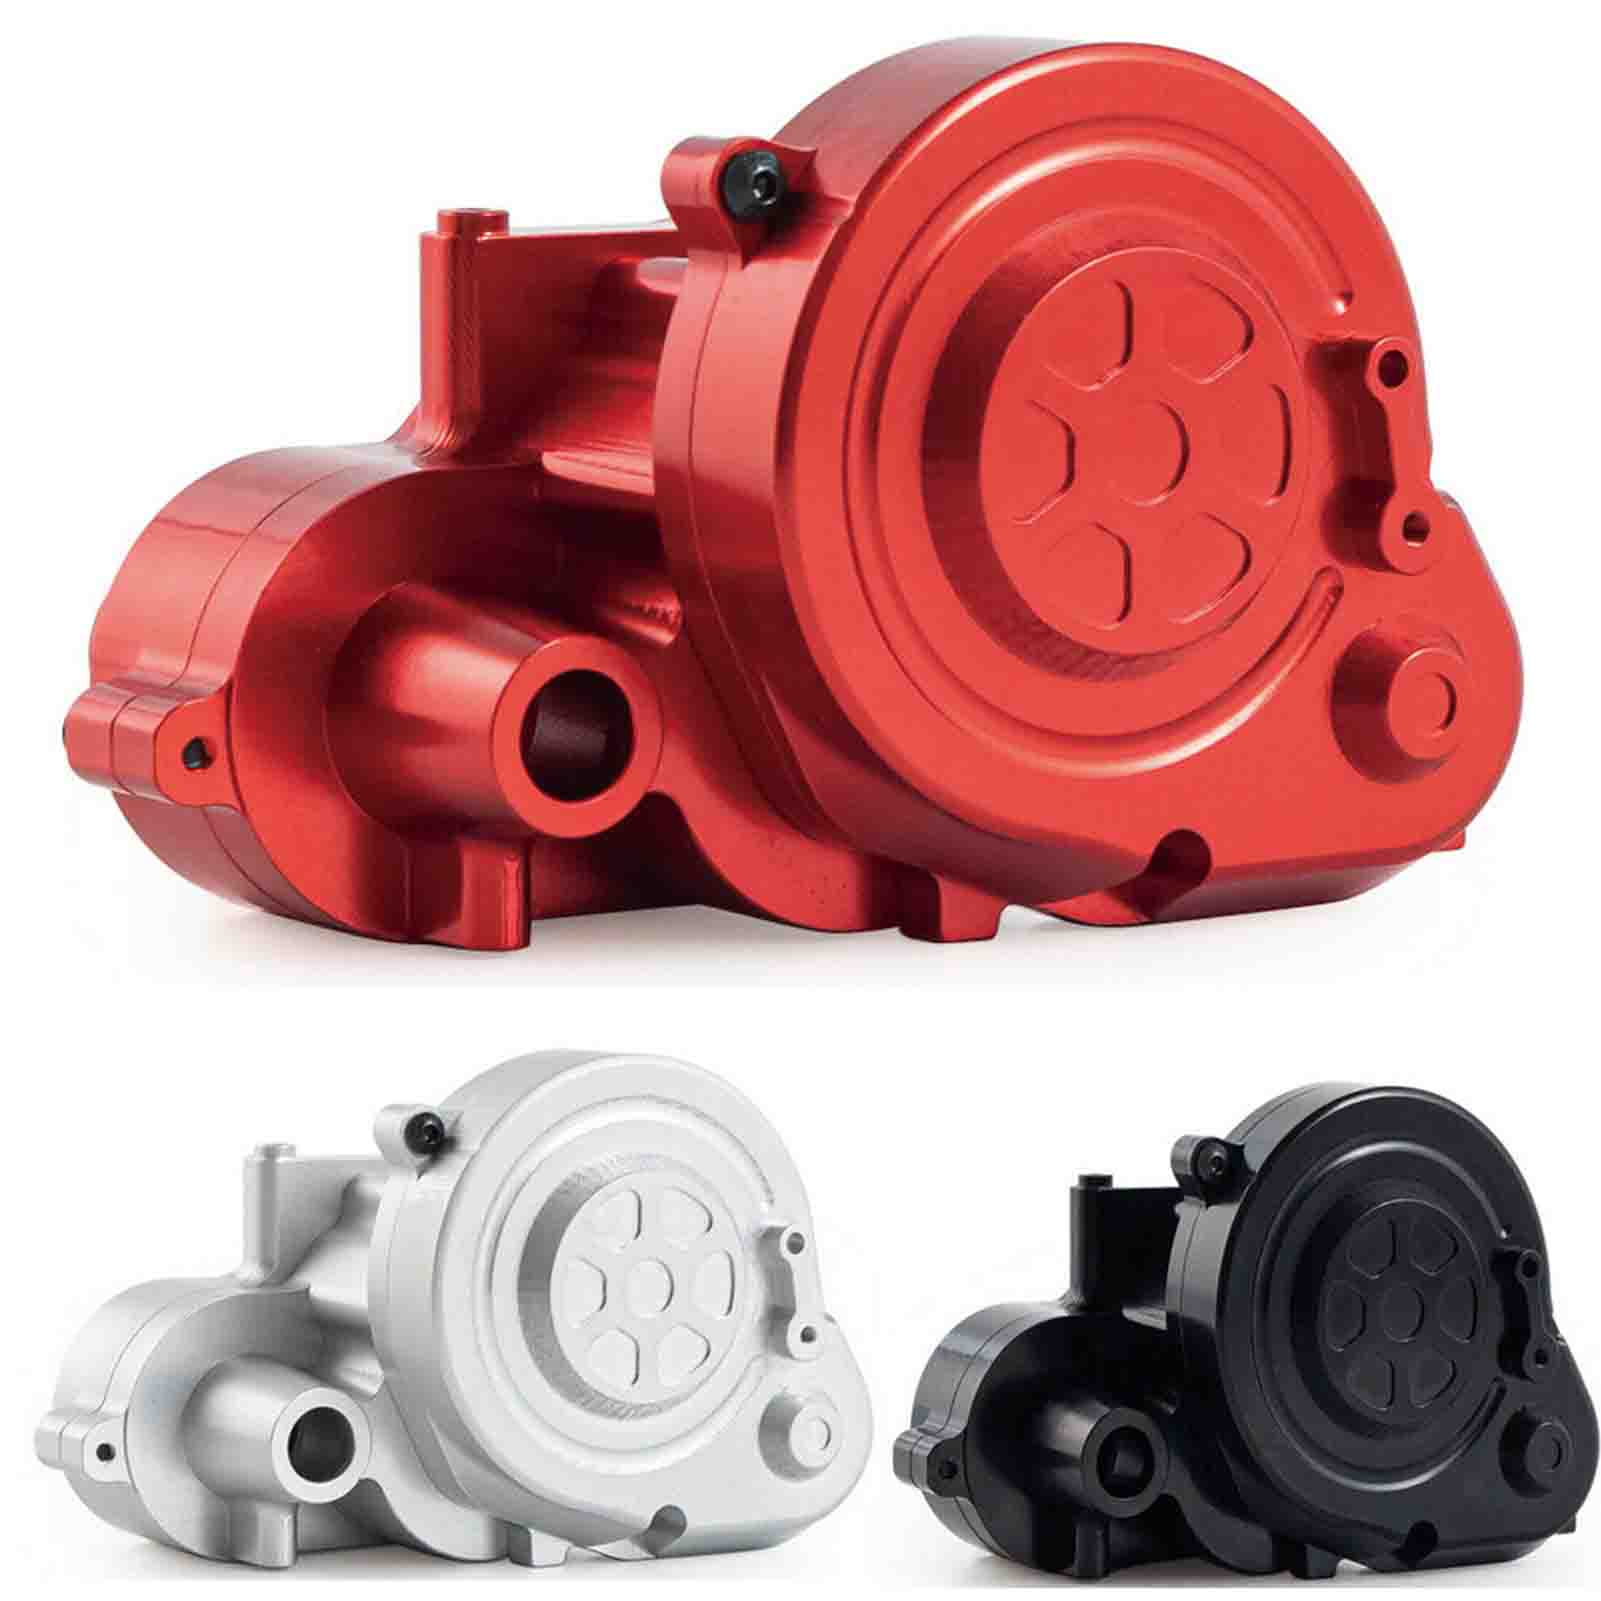 Aluminum Center Transmission Replacement For 1/10 Axial RBX10 Ryft 4WD Bouncer enlarge